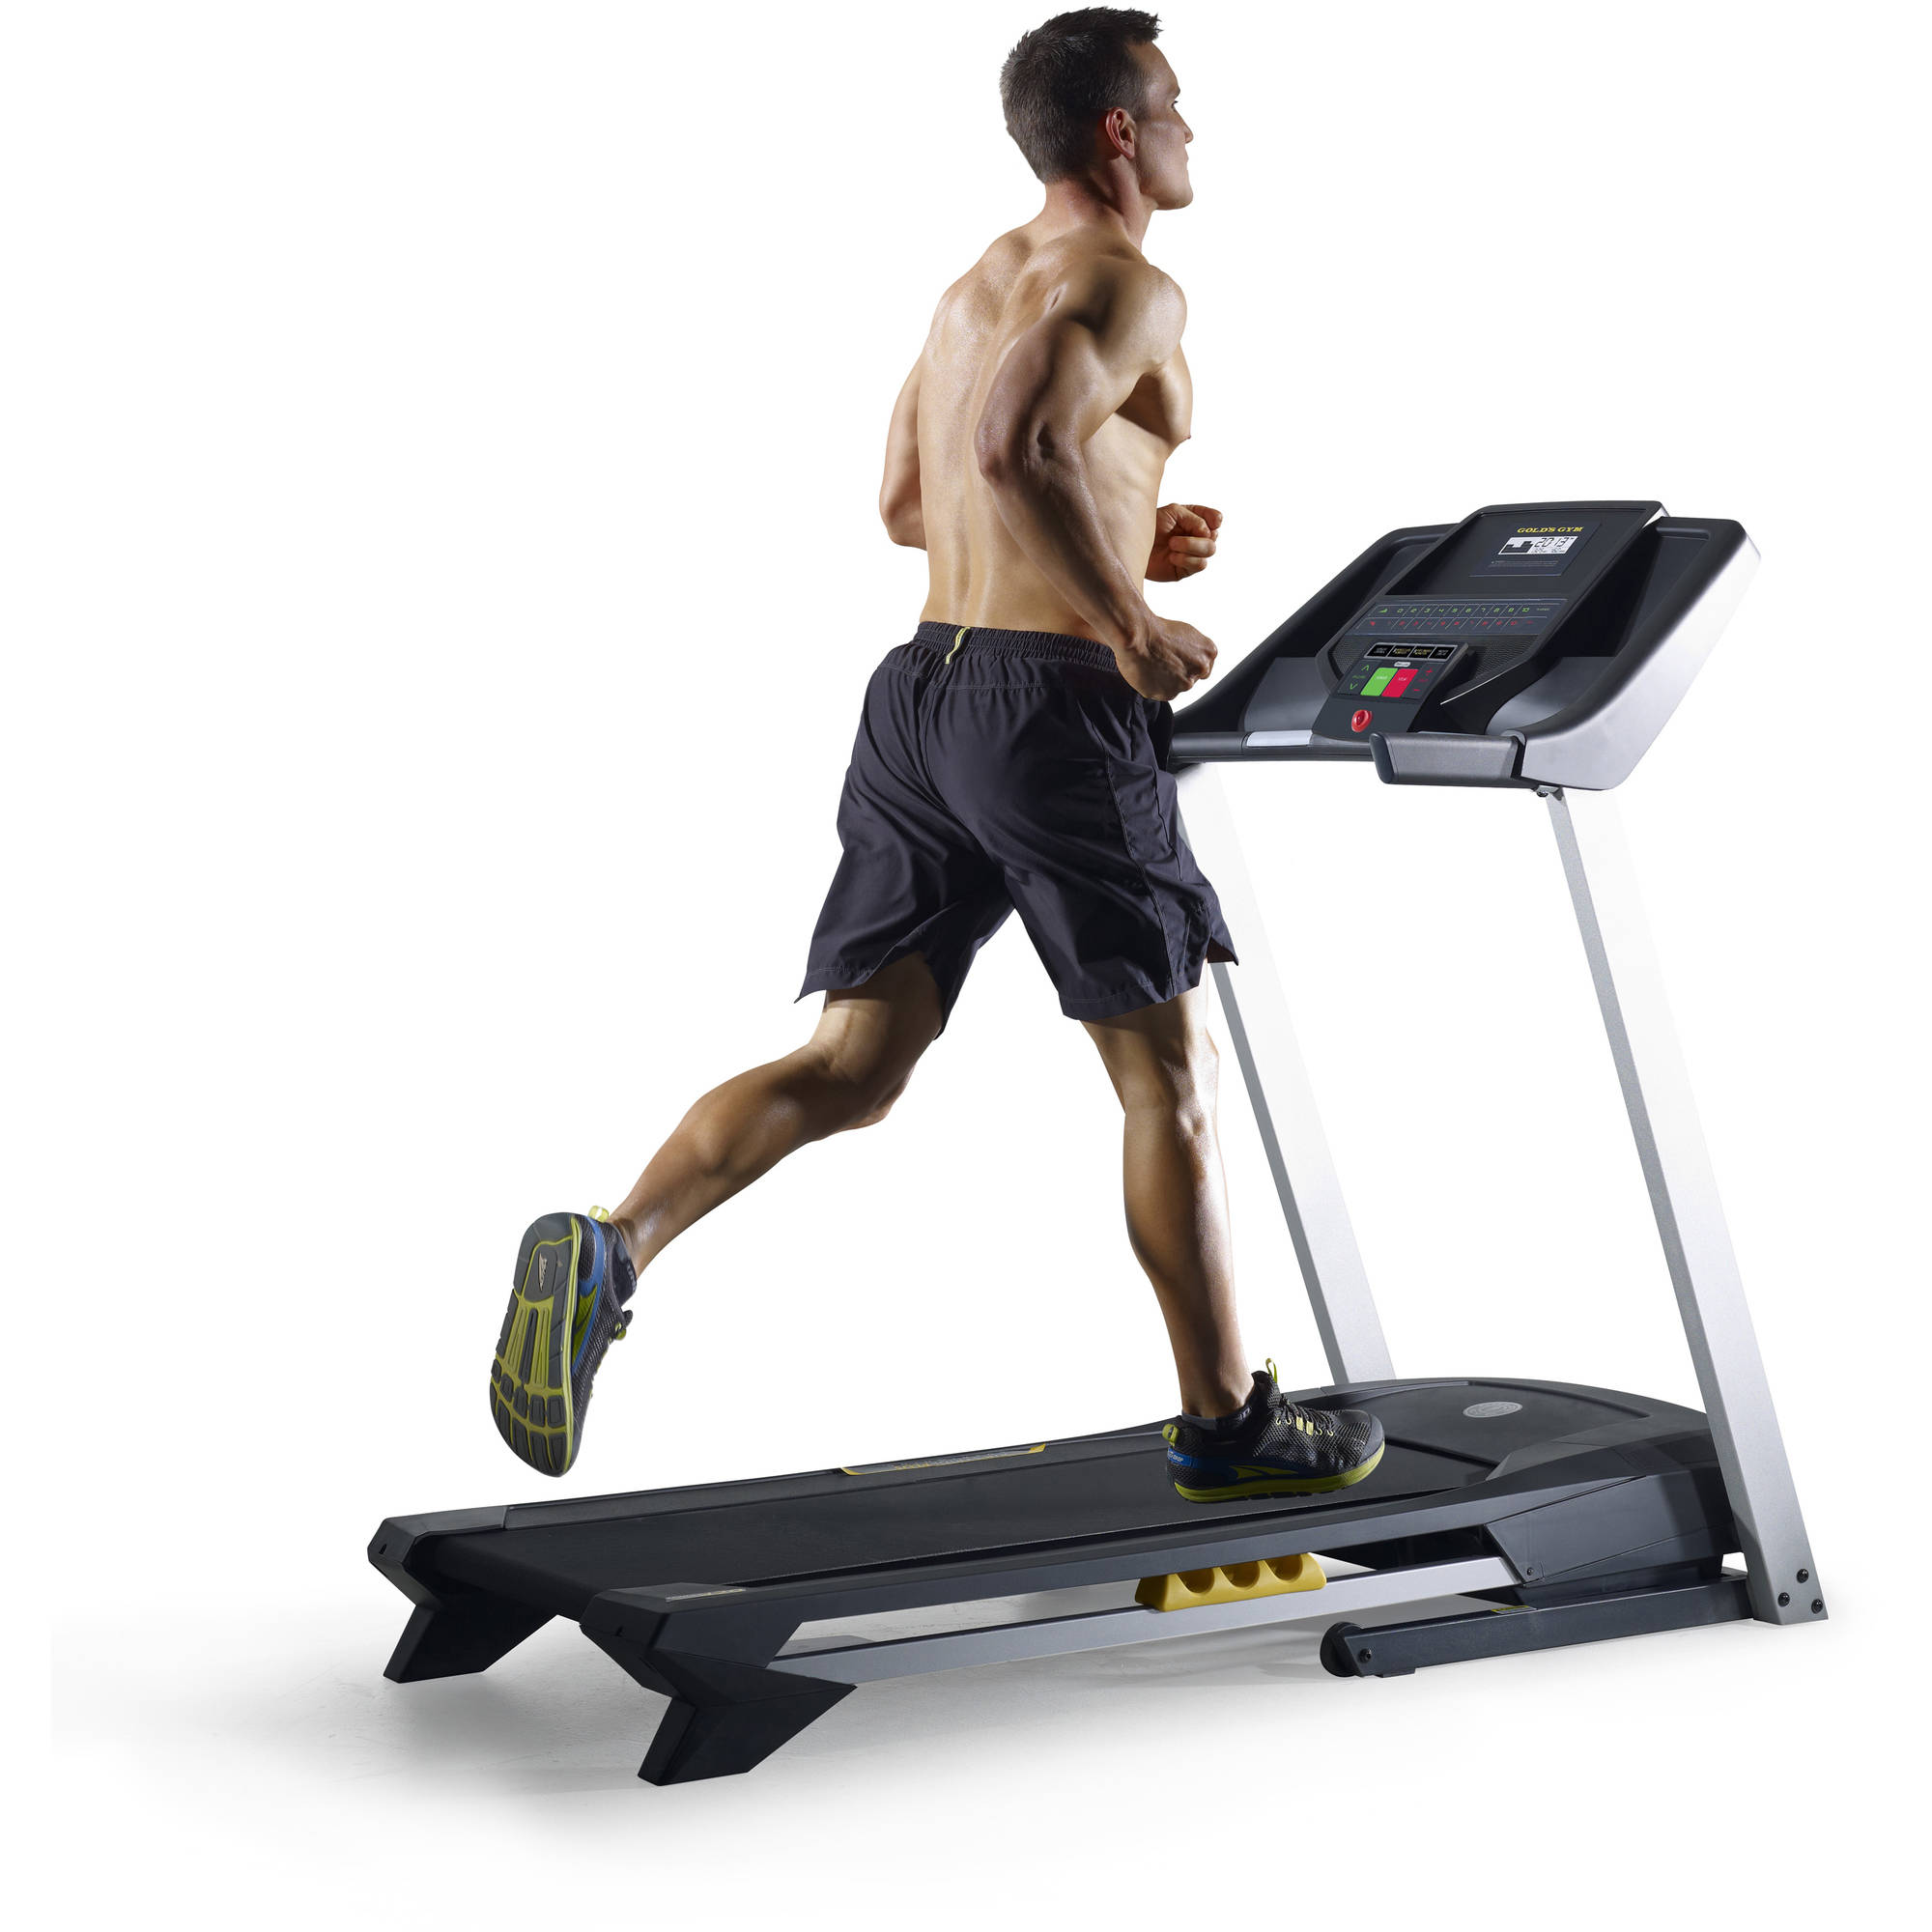 Best Home Treadmill 2018